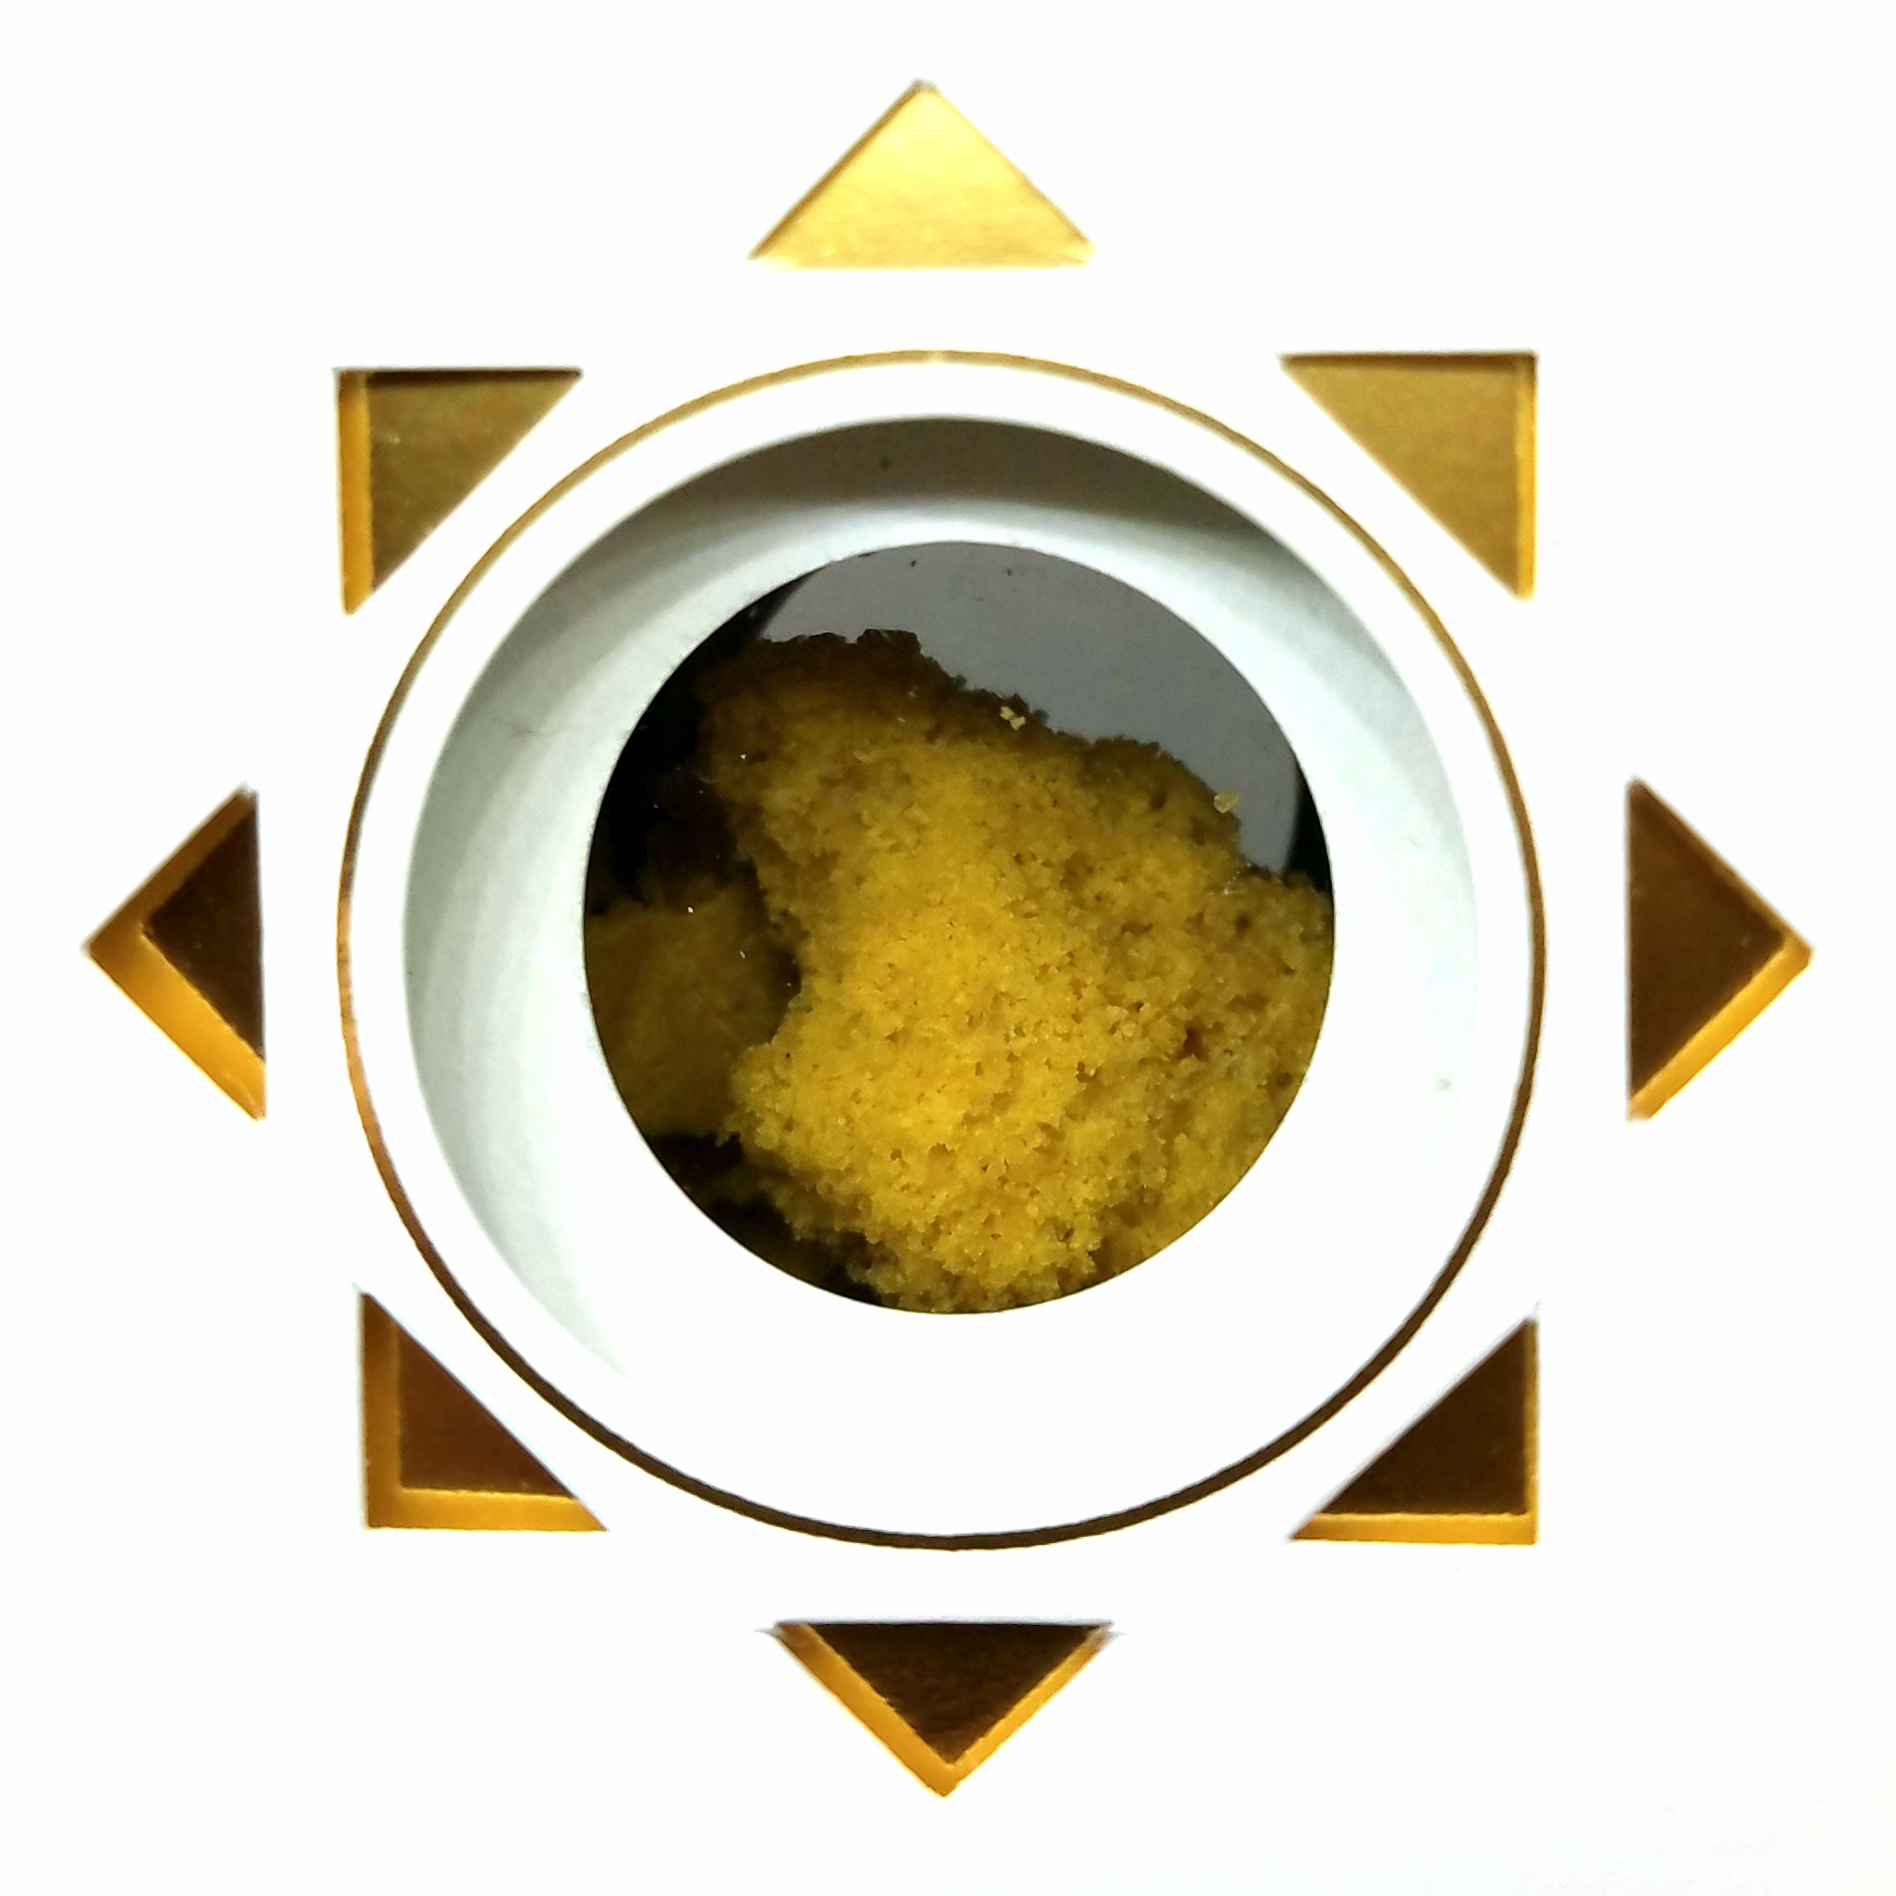 Fruit Bomb crumble extract produced by Apollo Grown